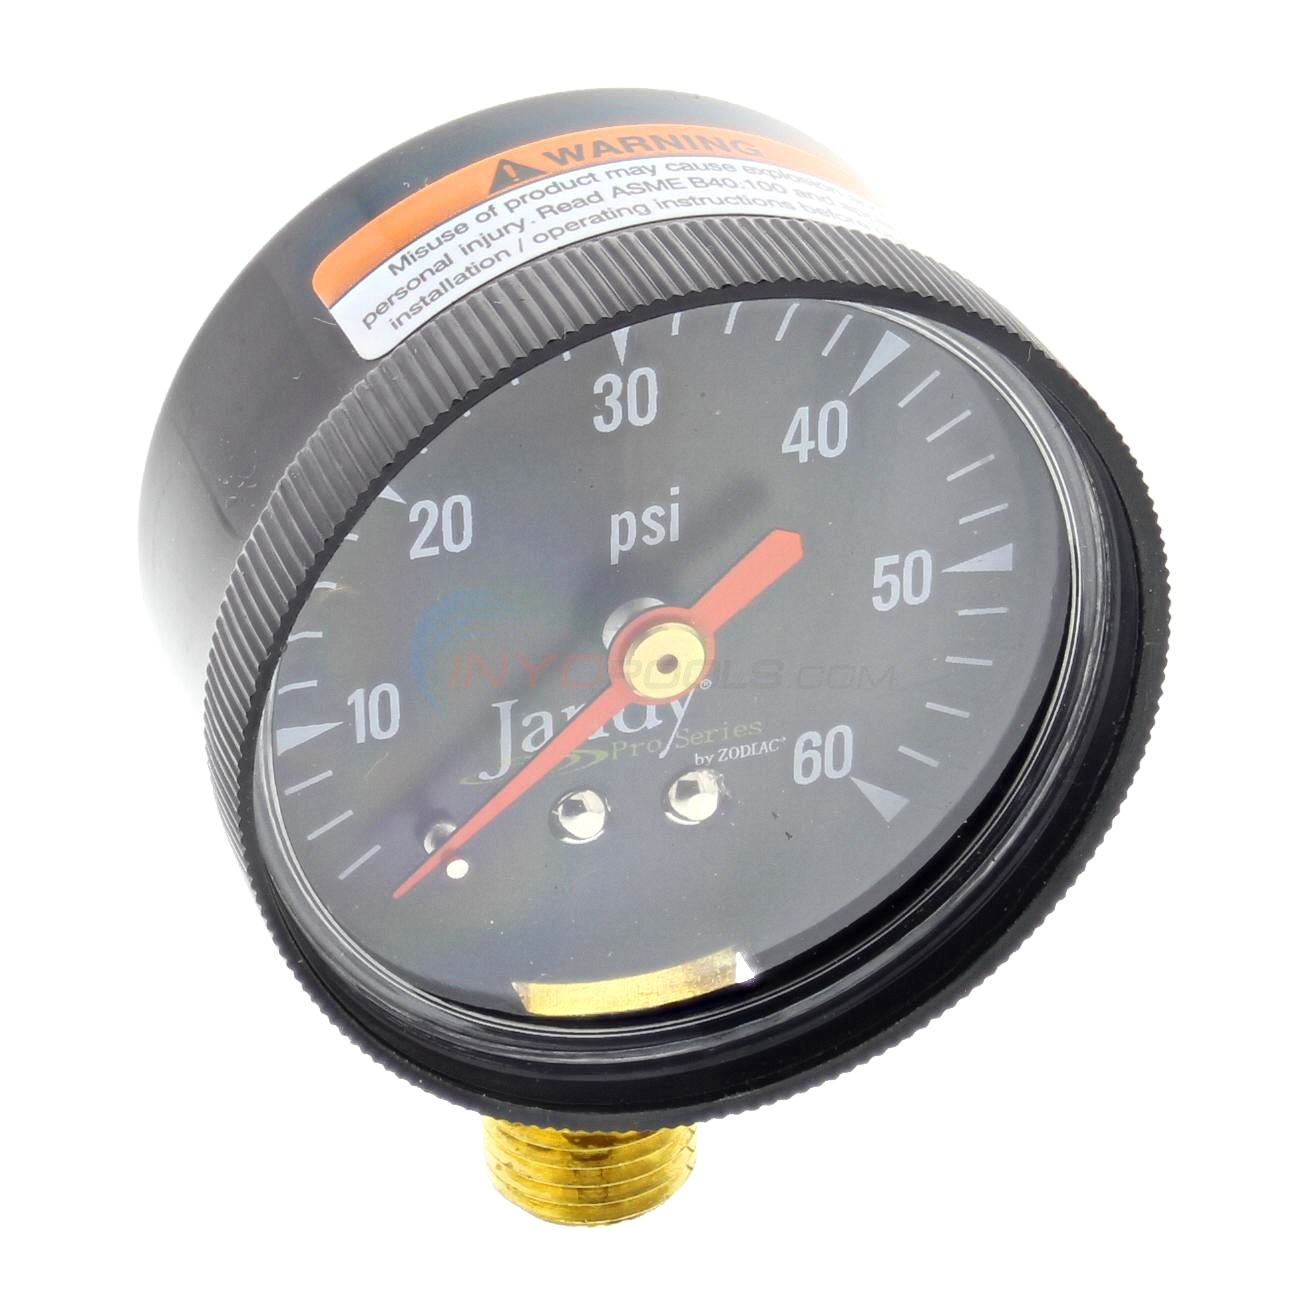 PRESSURE GAUGE With O-RING